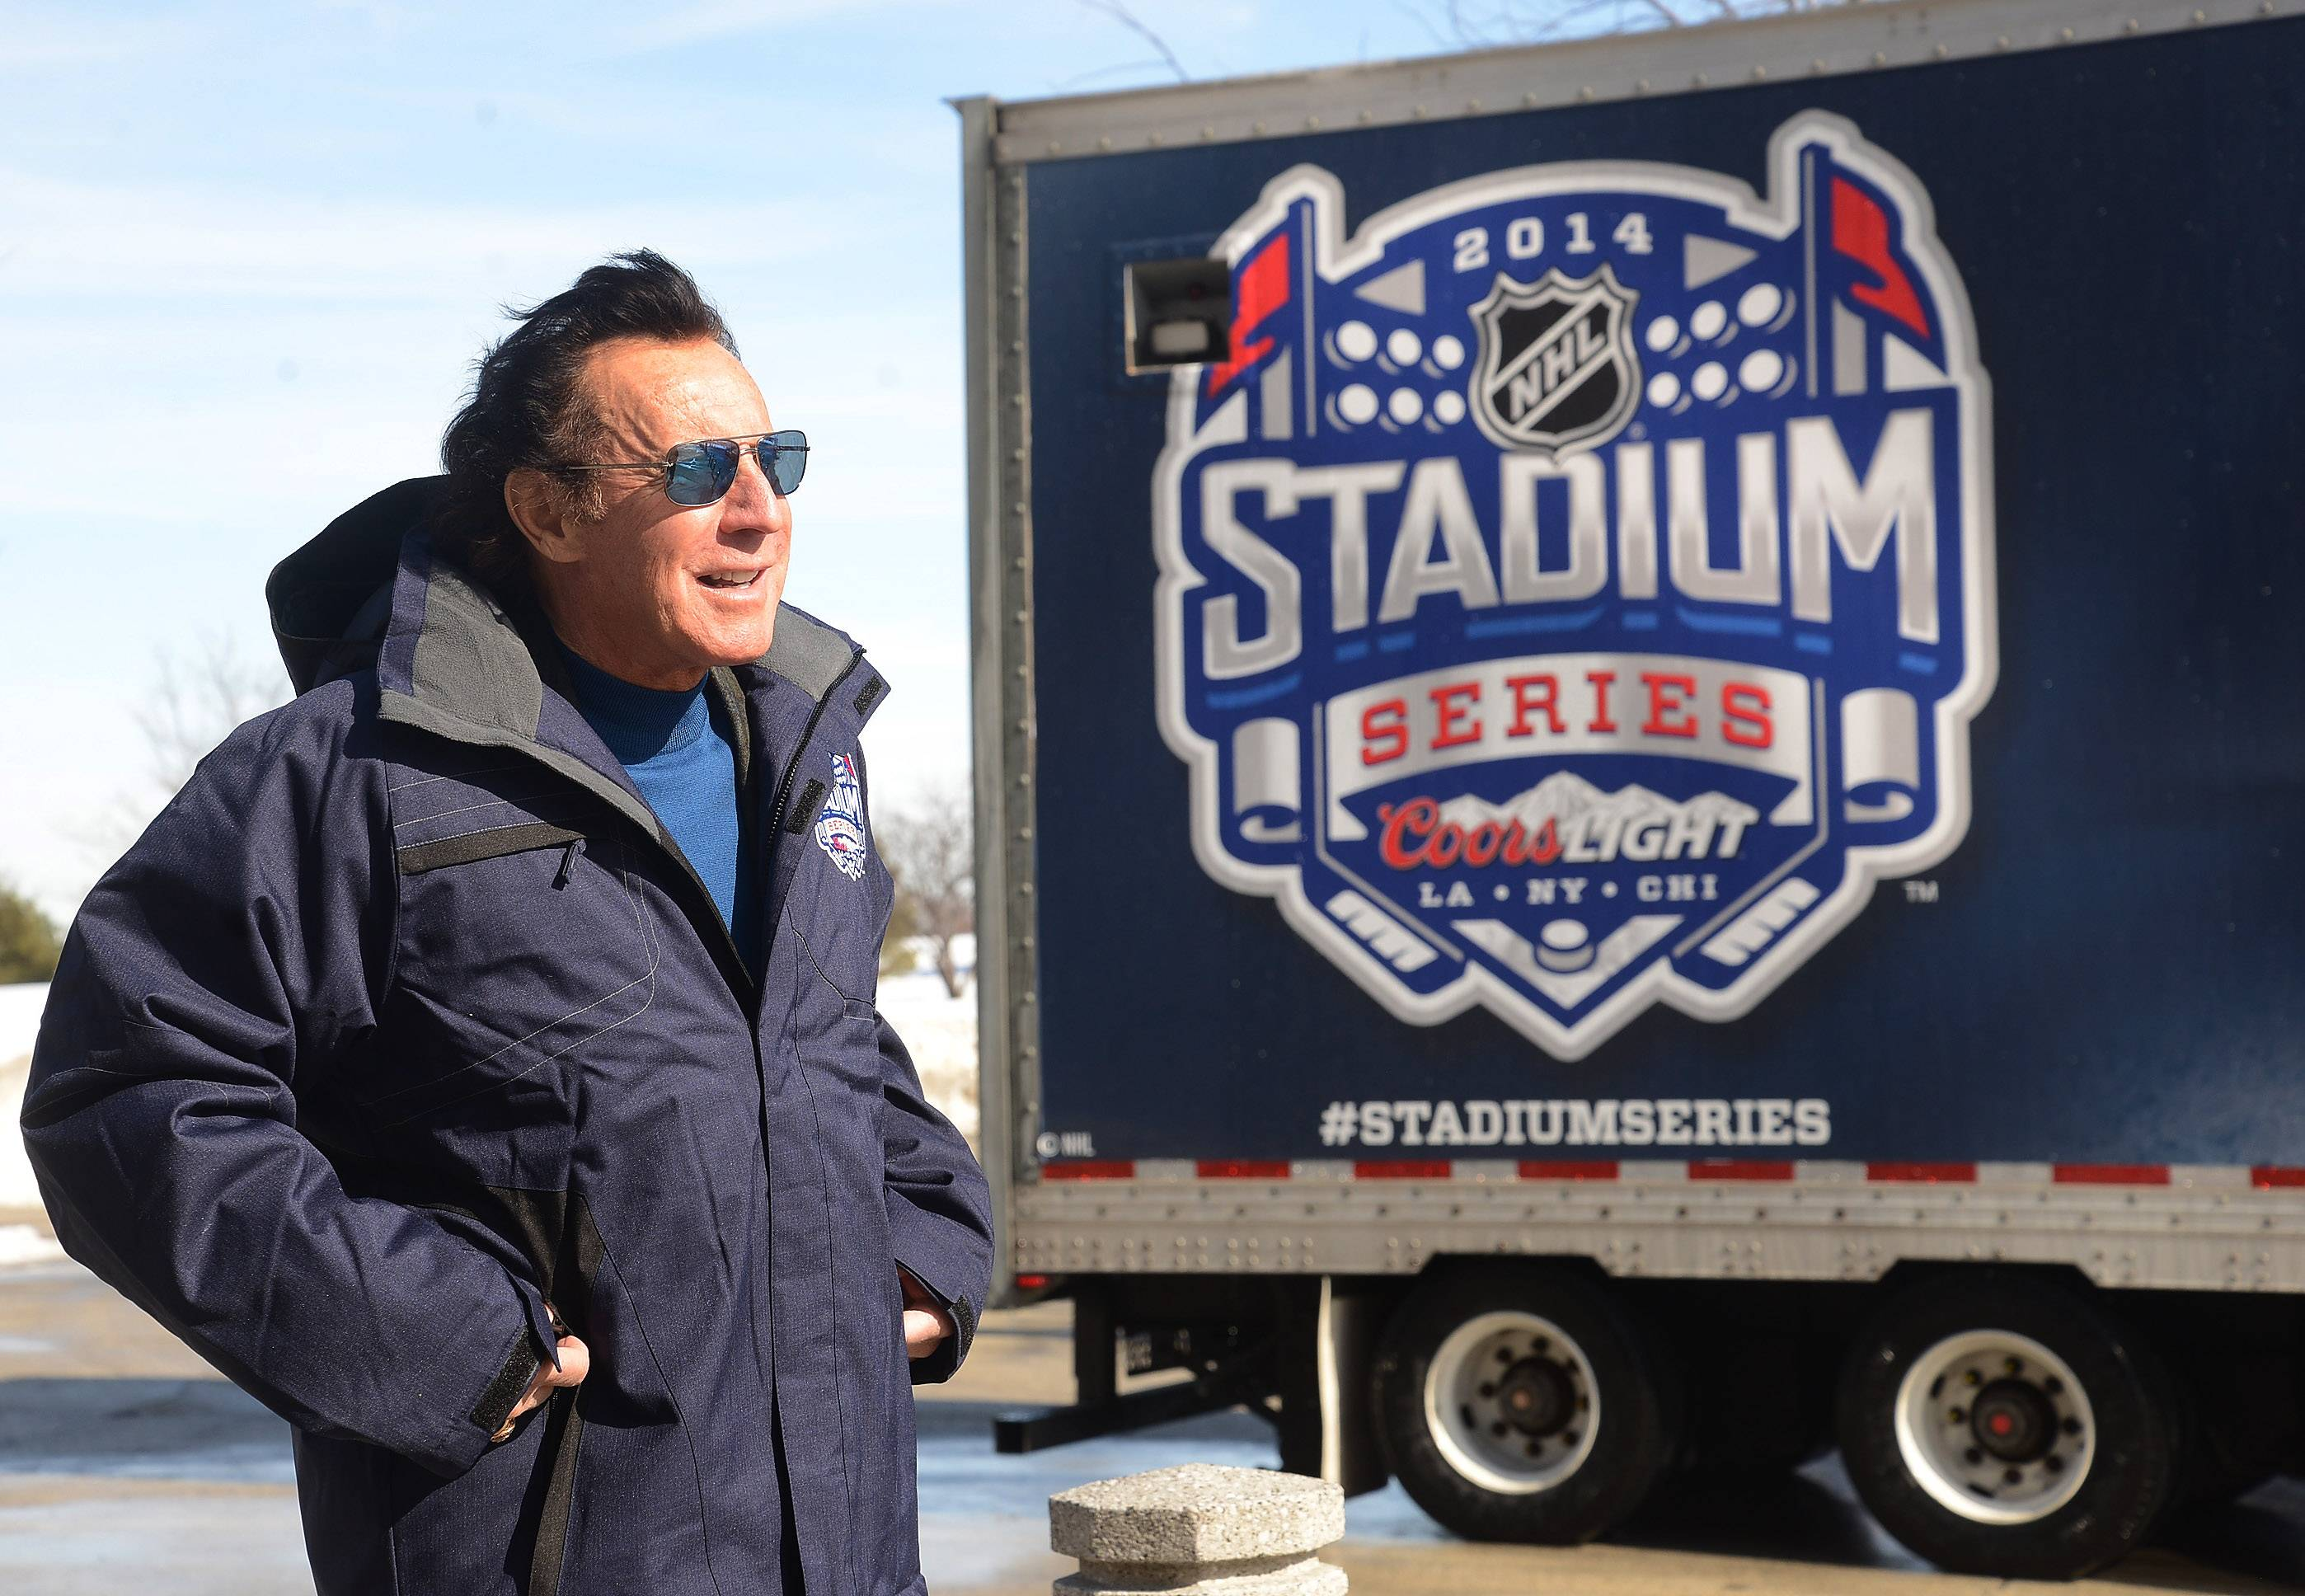 Blackhawks Hall of Famer Tony Esposito says NHL players love competing in the league's outdoor games. The Blackhawks will host the Pittsburgh Penguins in a sold-out game at Soldier Field on March 1.